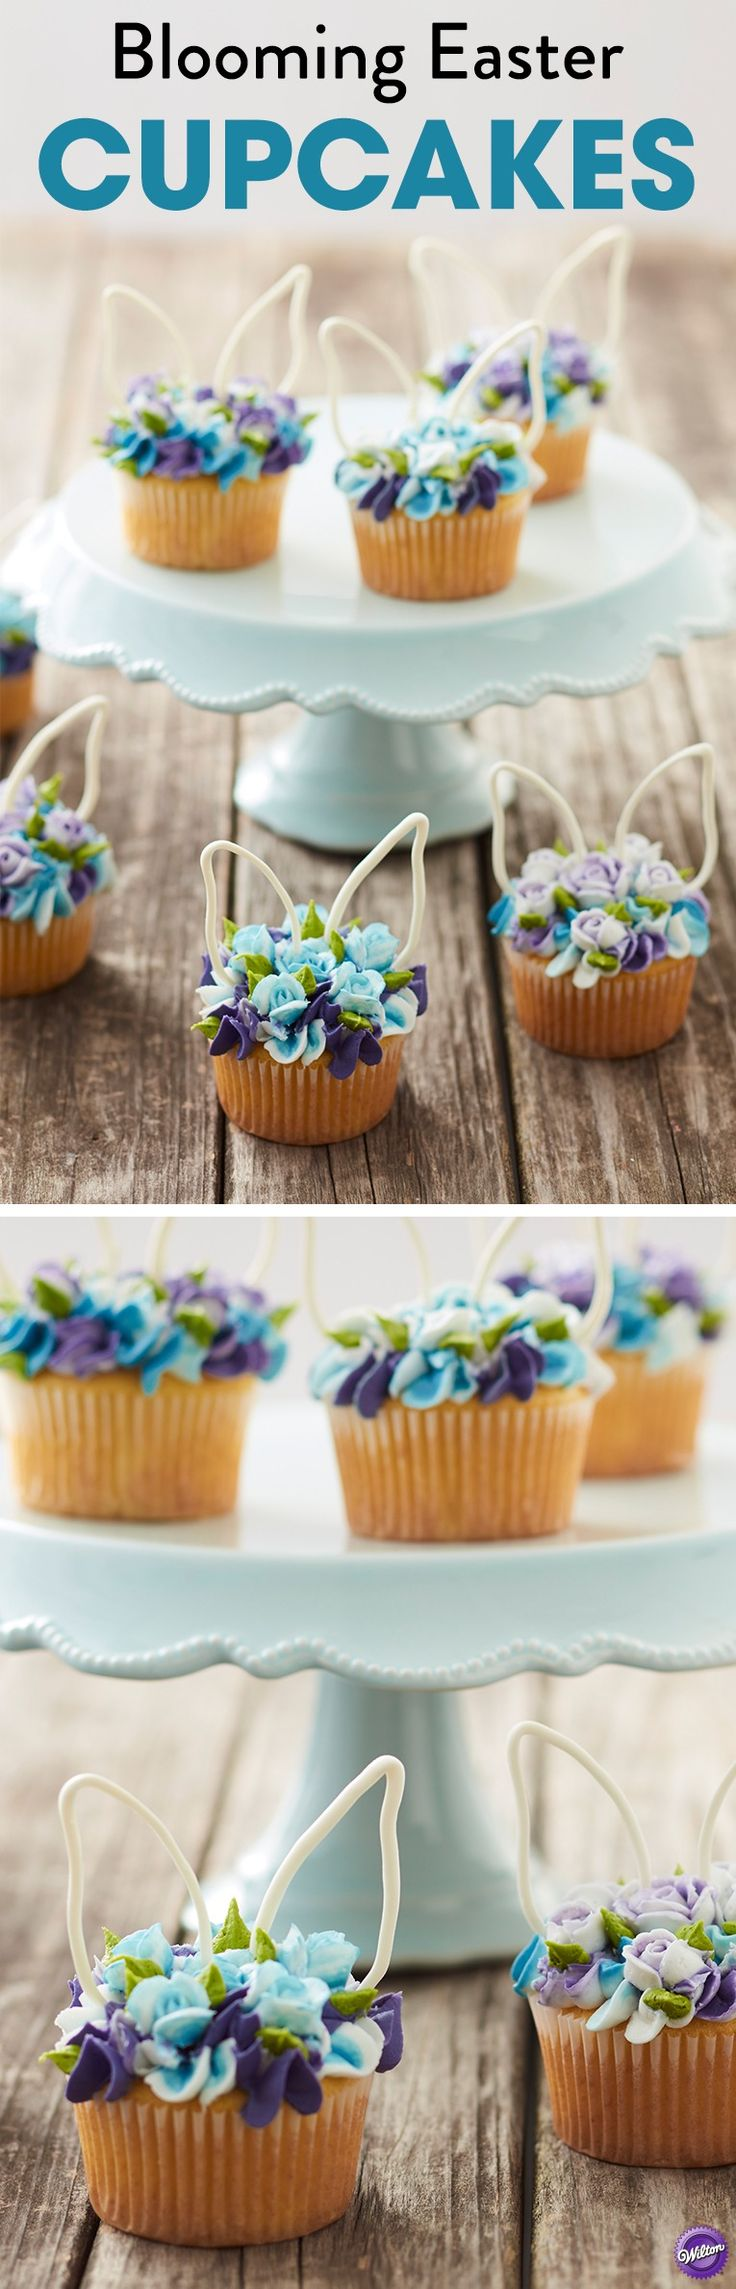 Blooming Easter Cupcakes - Looking for sweet Easter cupcake ideas to make this year? Look no further than these Blooming Easter Cupcakes. Topped with simple piped flowers and candy bunny ears, these Easter cupcakes are a spring floral fantasy! You can add dimension and texture to your piped flowers by striping your decorating bags with colored icing so your roses are literally blooming with color. A spring dessert that is also great for baby showers, wedding showers or even birthdays!